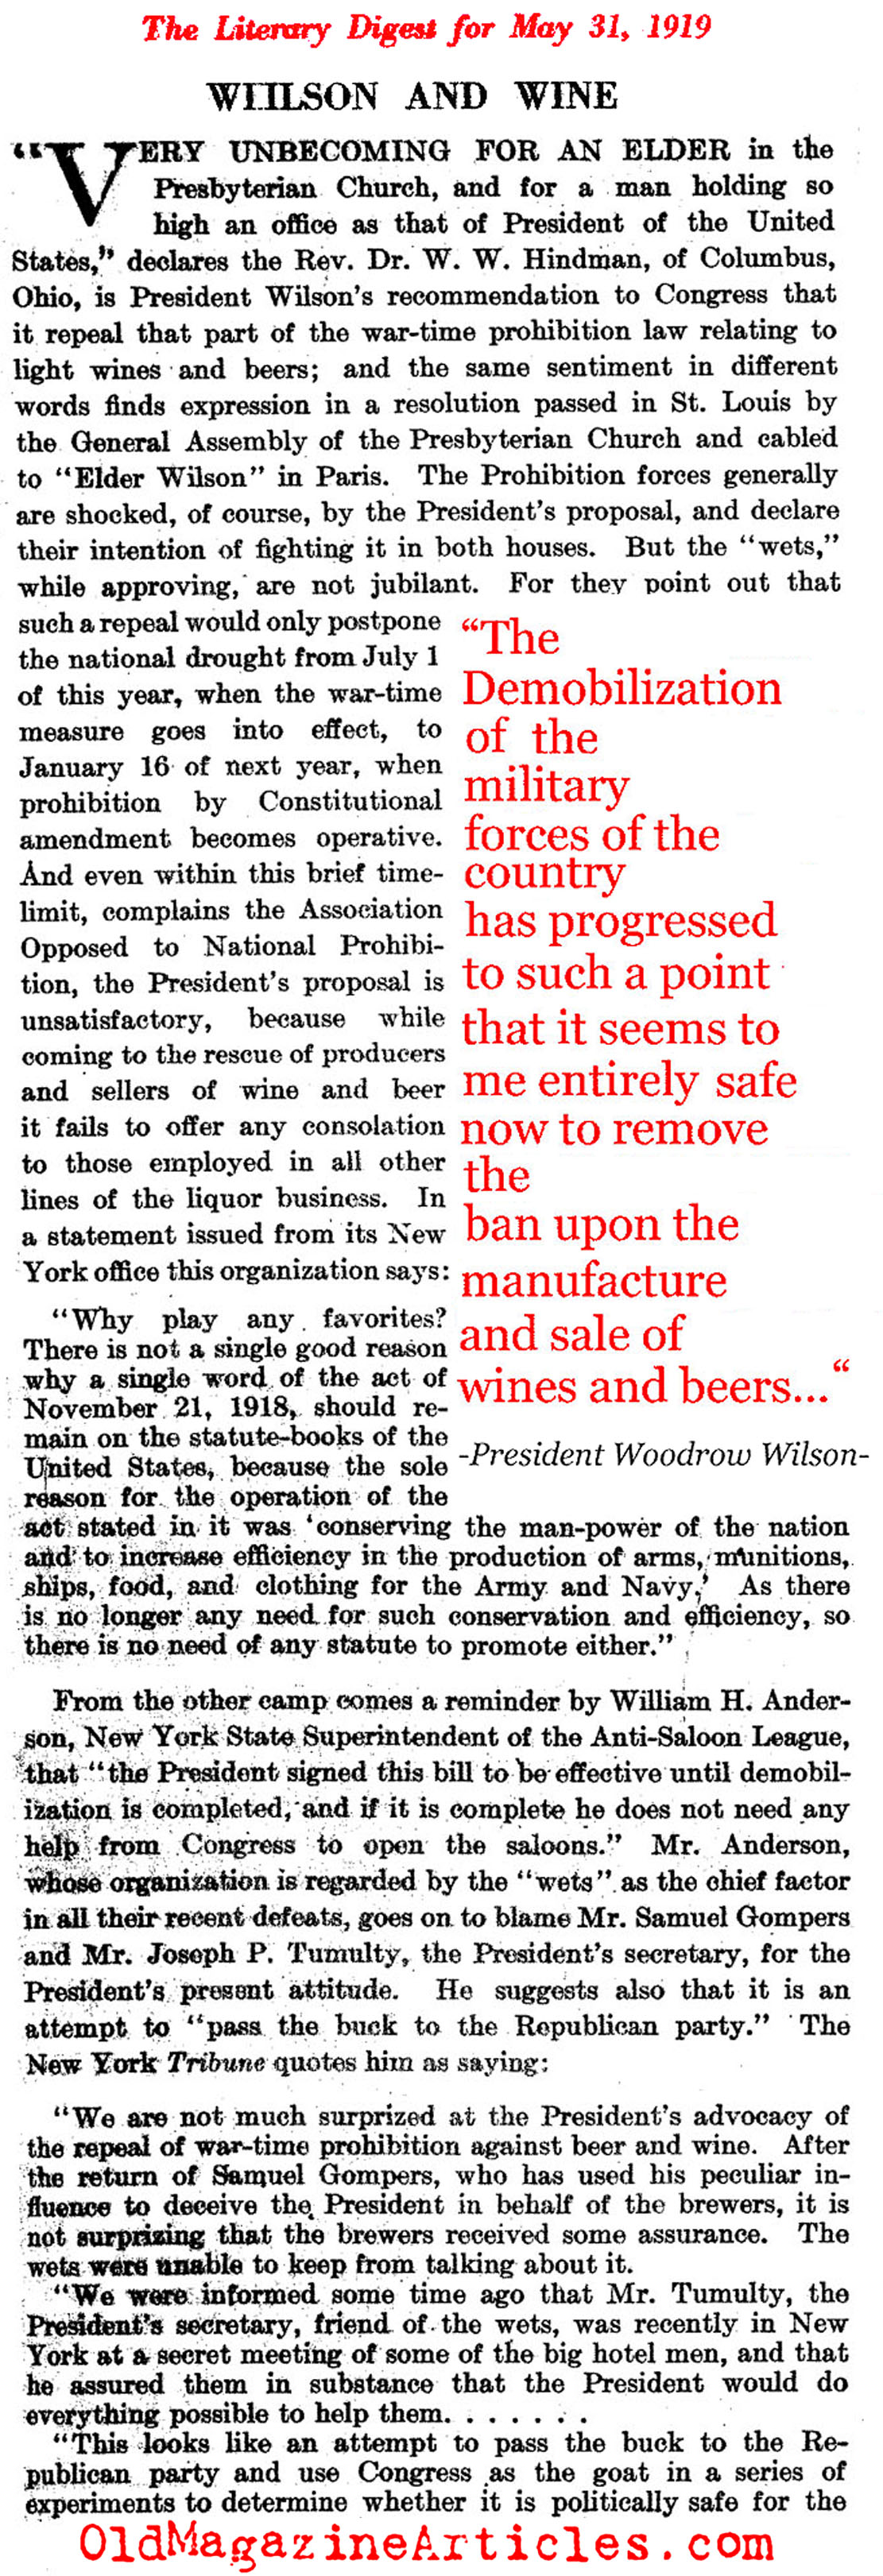 Woodrow Wilson and the Repeal of Prohibition  (Literary Digest, 1919)